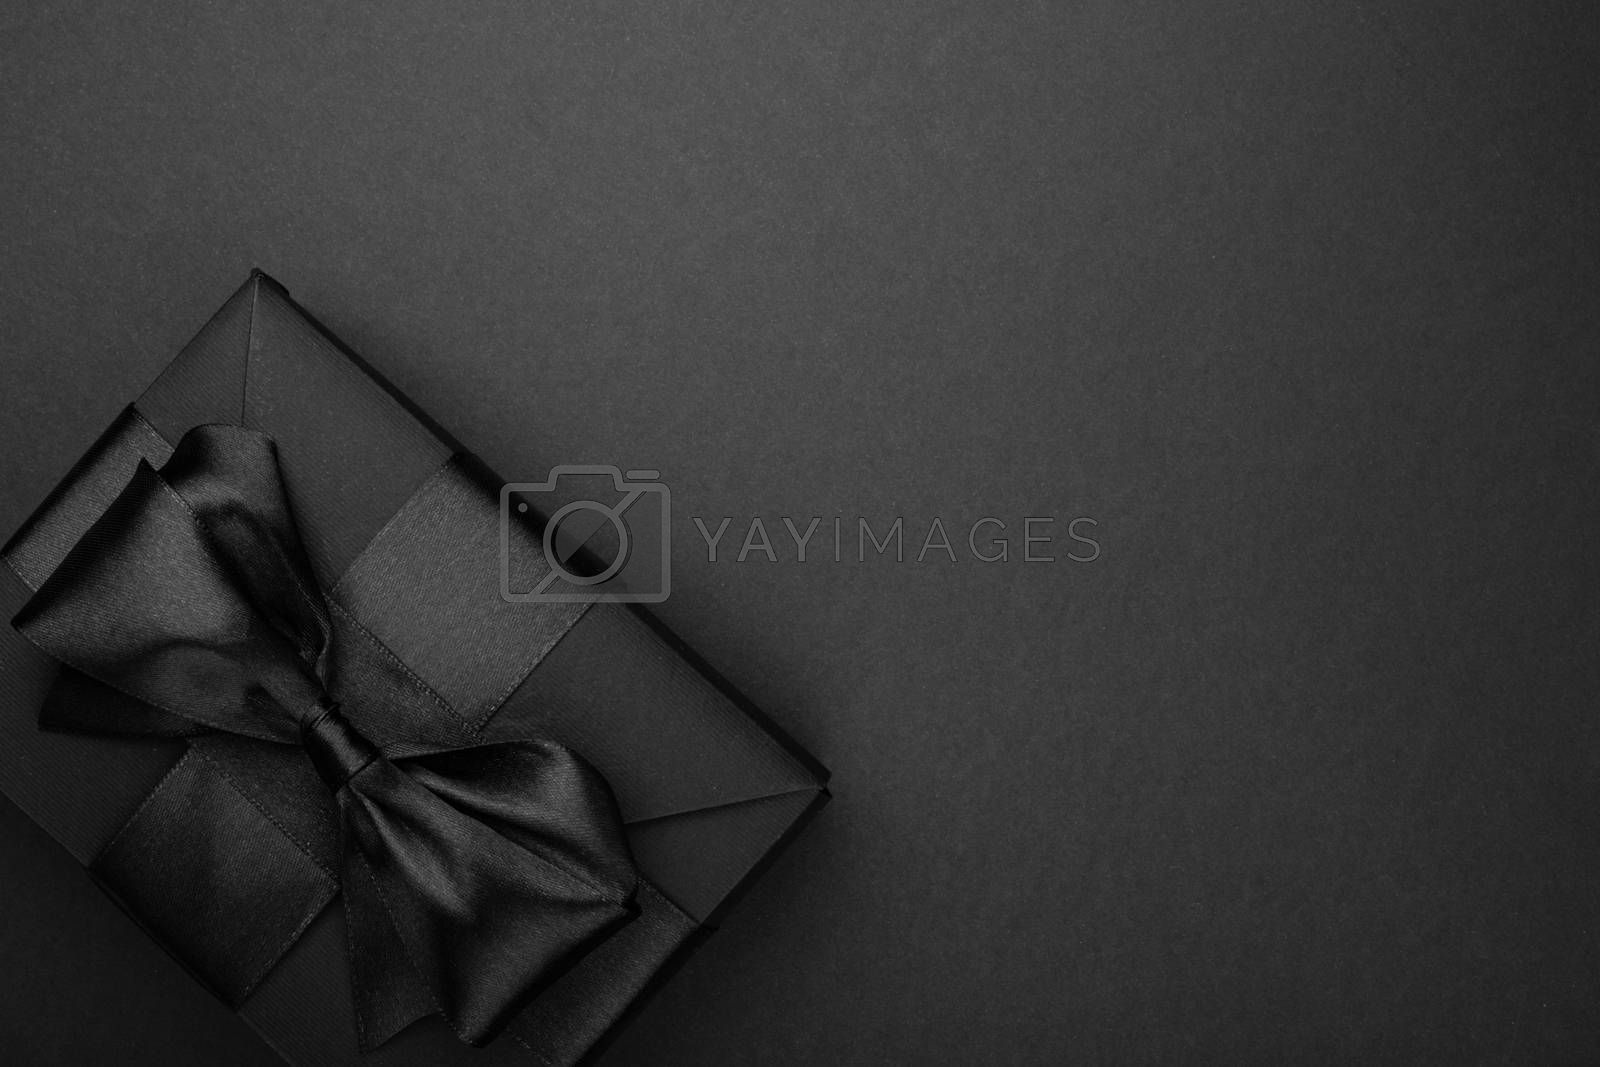 Black friday sale background with box gift present with satin ribbon bow copy space for text